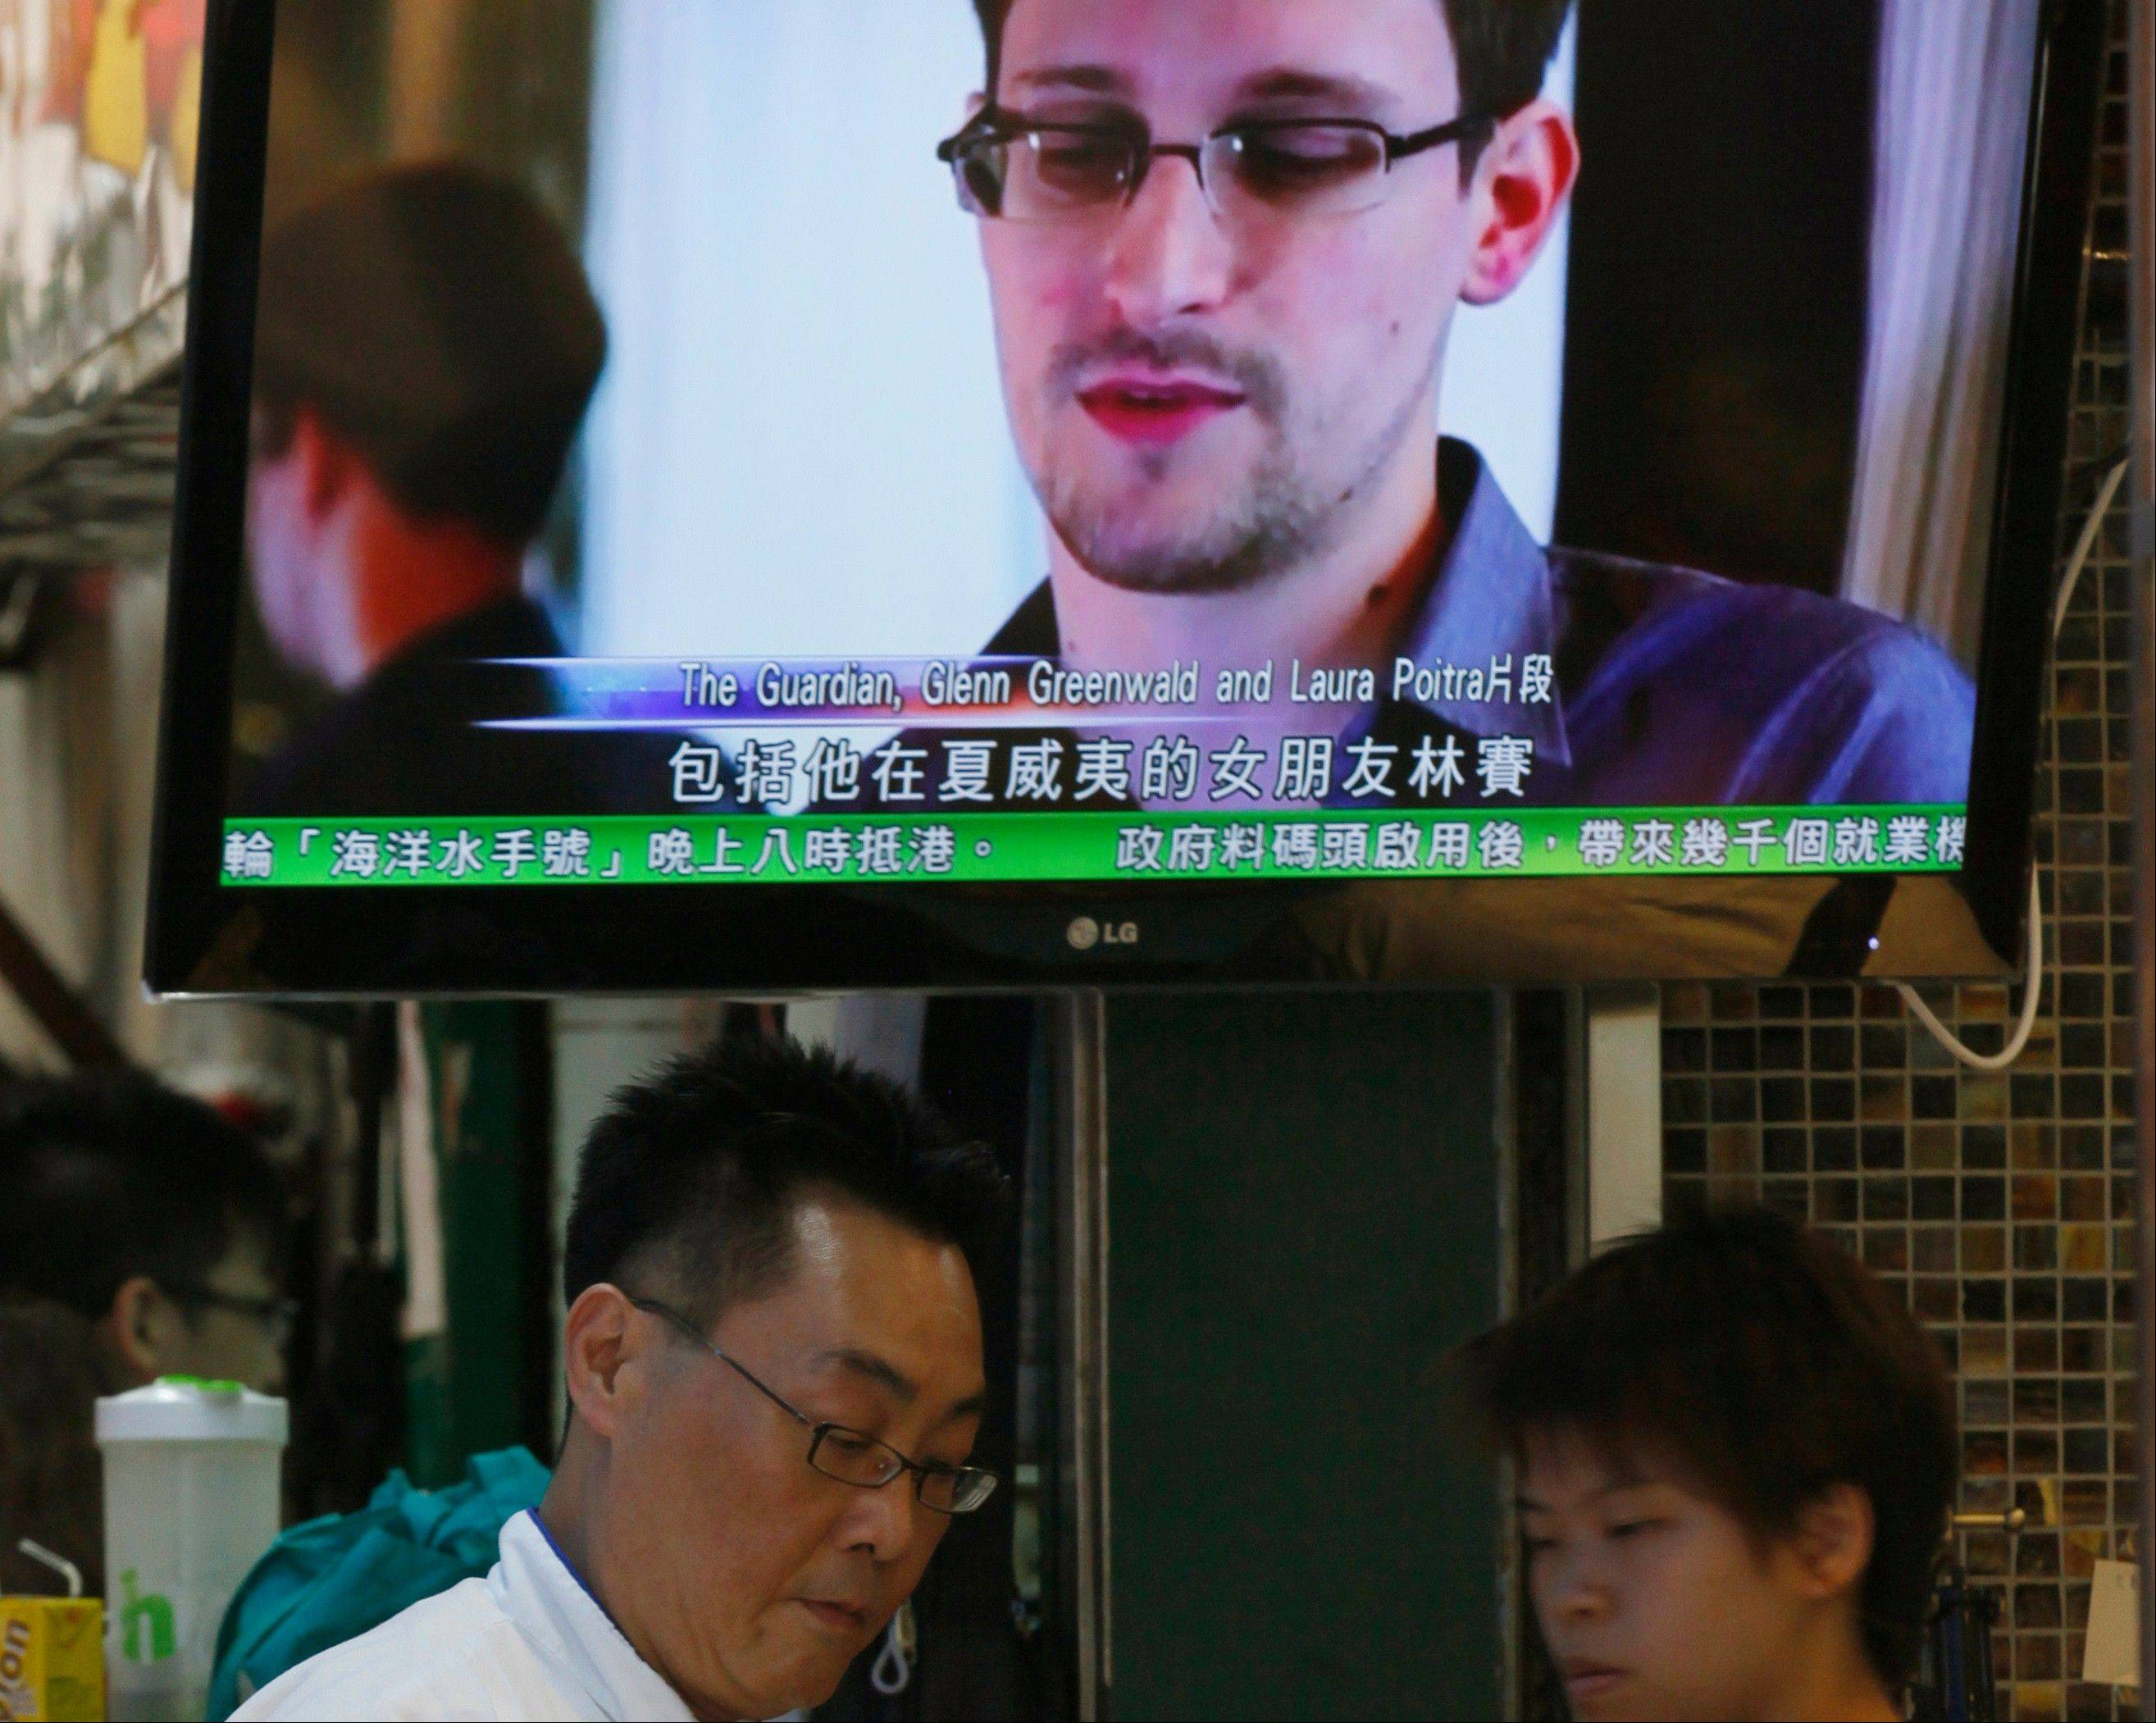 A TV screen shows a news report on Edward Snowden, a former CIA employee who leaked top-secret documents about sweeping U.S. surveillance programs, at a restaurant in Hong Kong Wednesday, June 12, 2013. Snowden dropped out of sight after checking out of a Hong Kong hotel on Monday.